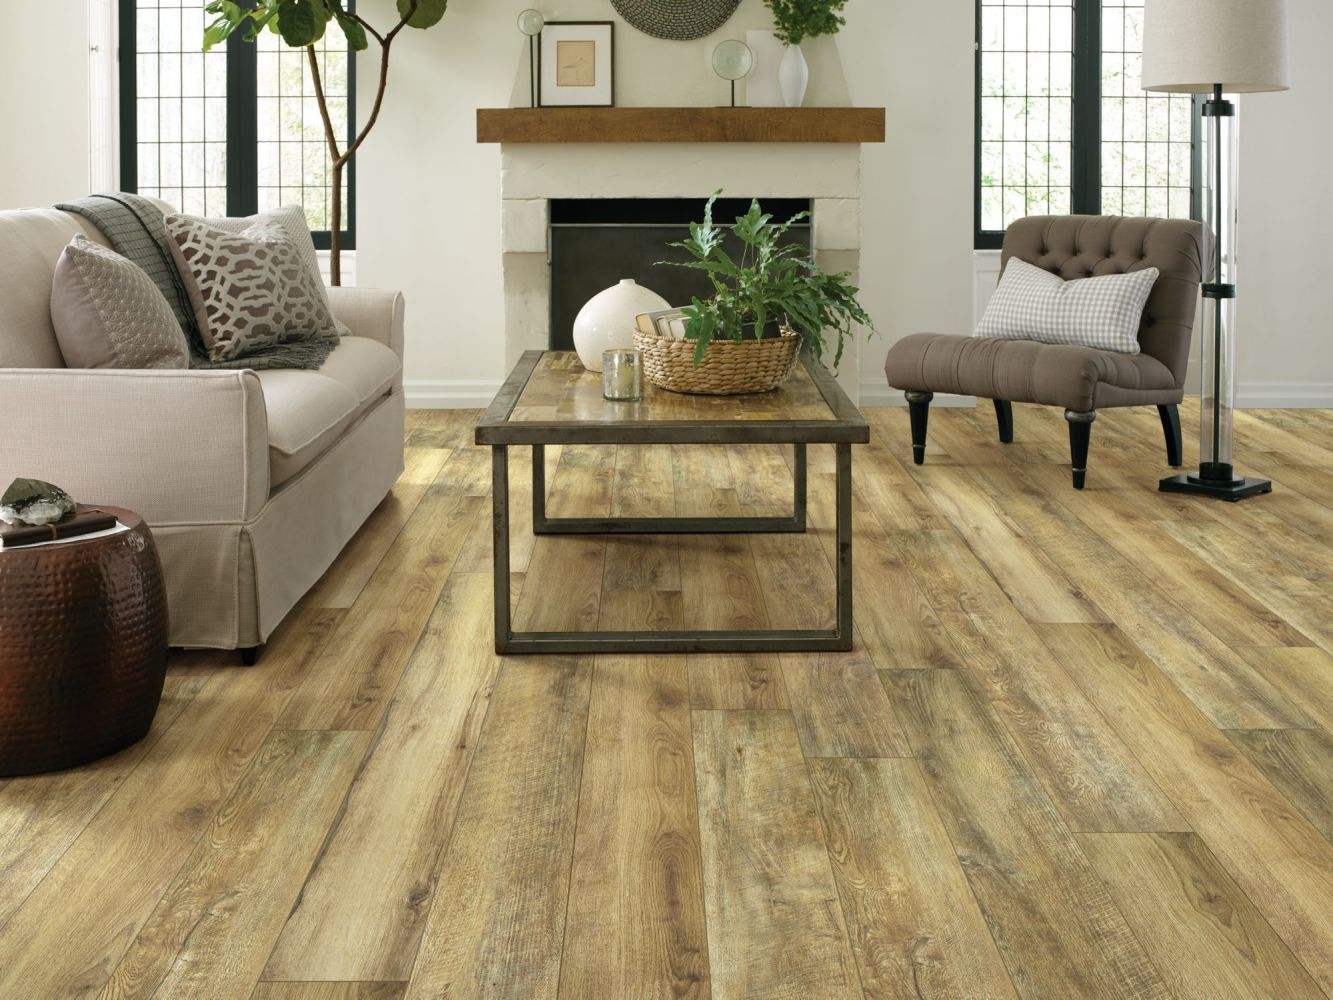 Shaw Floors Resilient Residential Paragon XL HD Plus Hazelnut Oak 07053_2033V